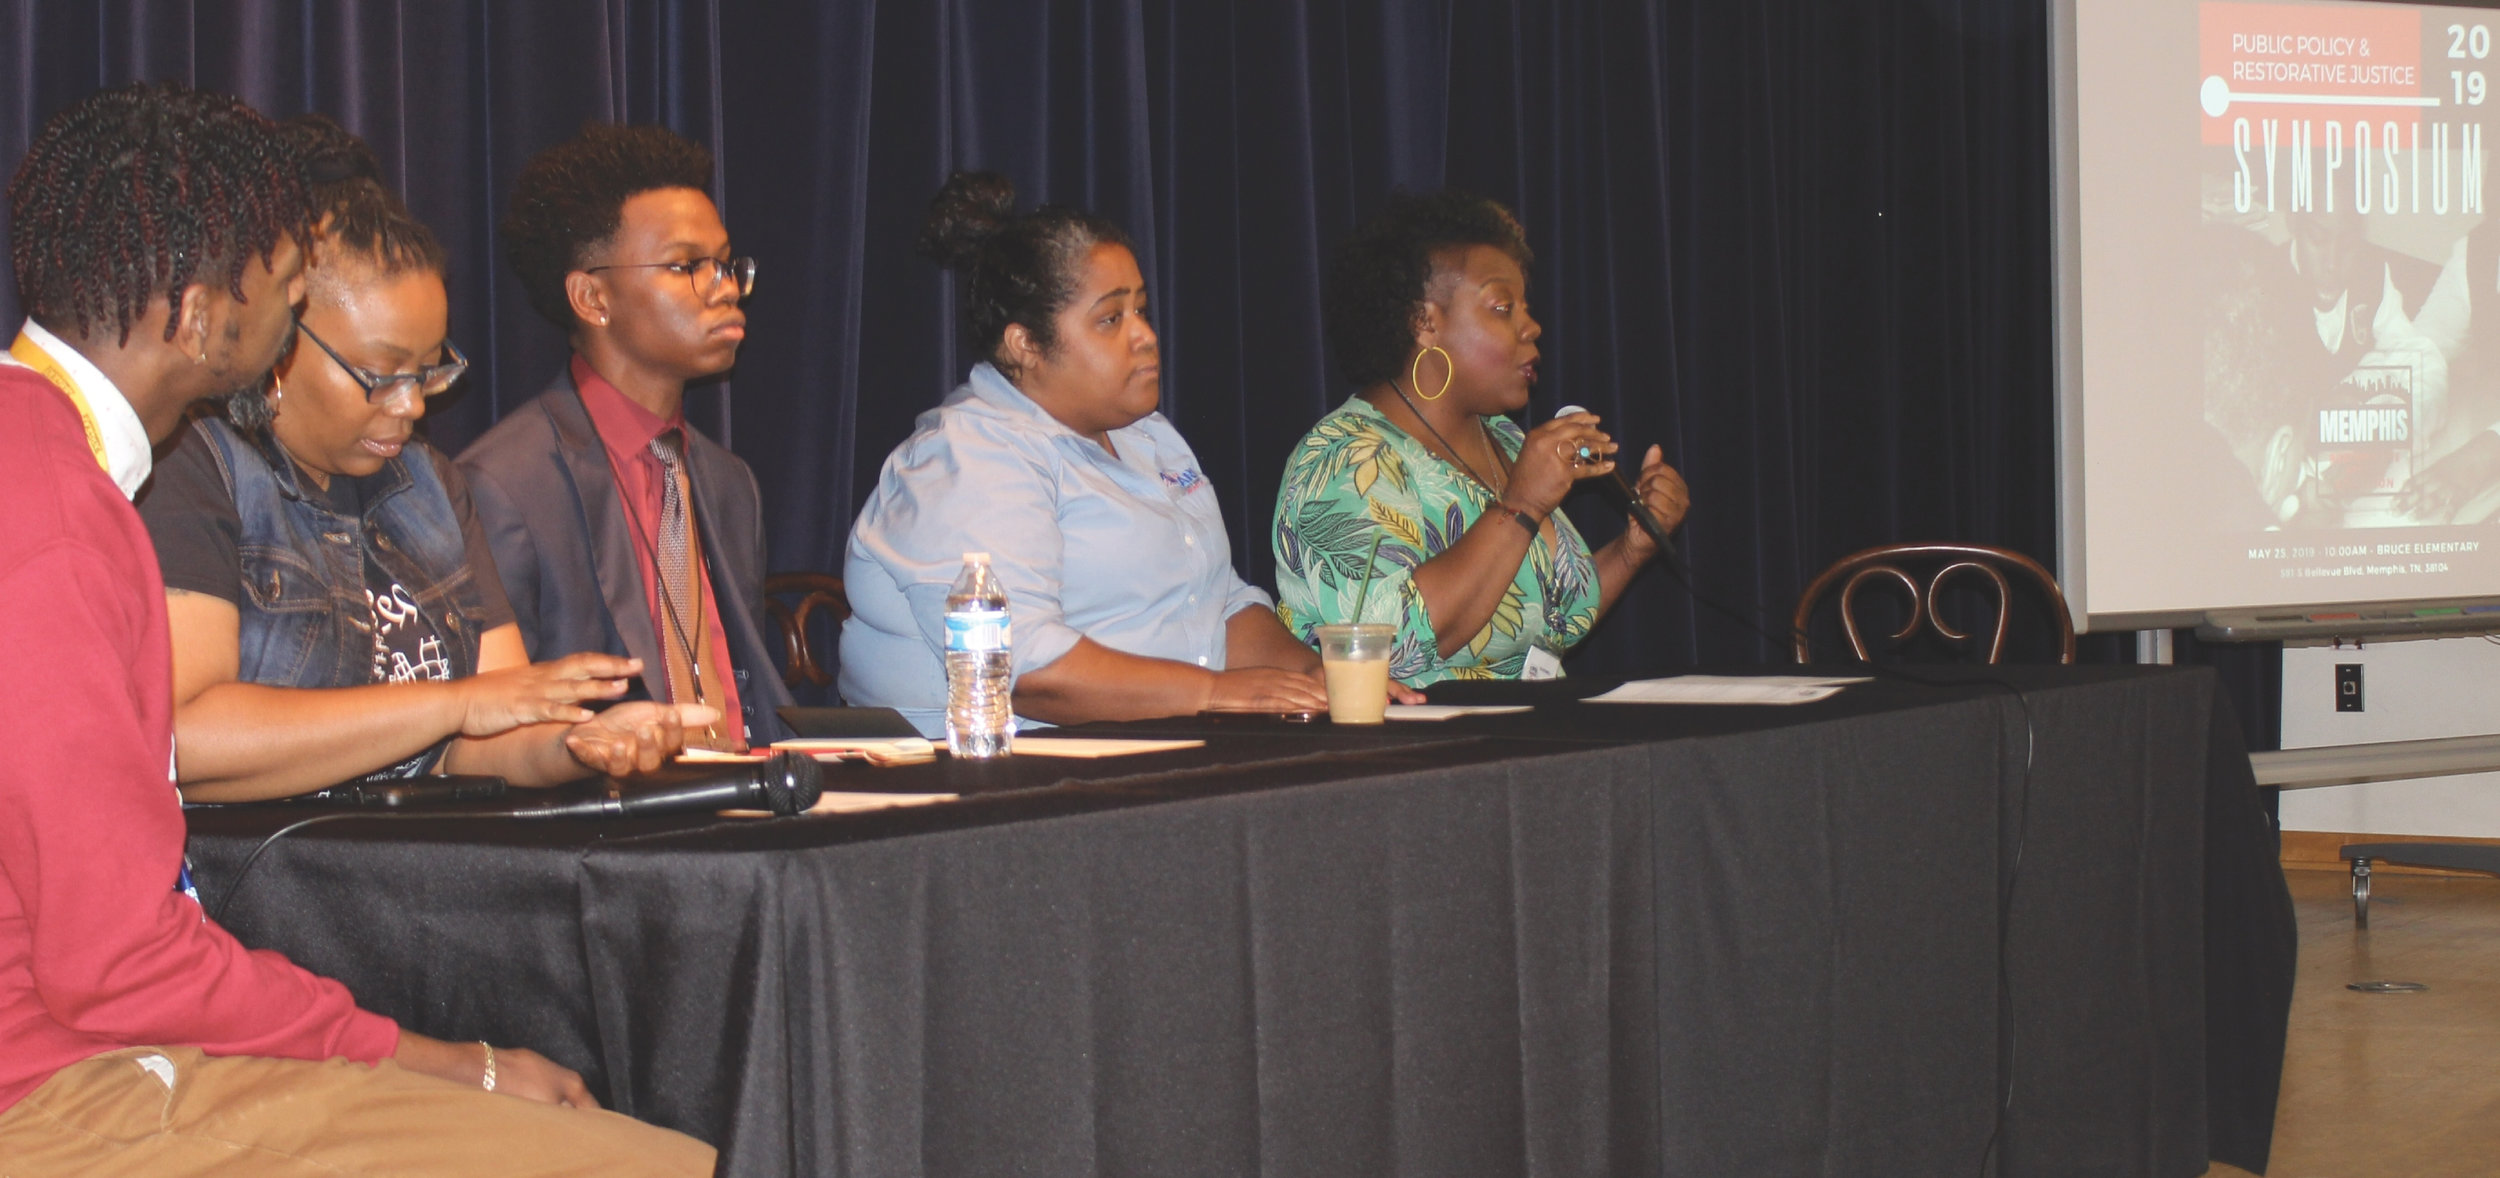 Empowerment expert Pametria Brown (right) shares a reflection as part of a symposium panel that also featured (l-r) Archie Moss Jr., Shahidah Jones, Cameron Jones and state Sen. Raumesh Akbari, who was the moderator. (Photo: George W. Tillman Jr.)